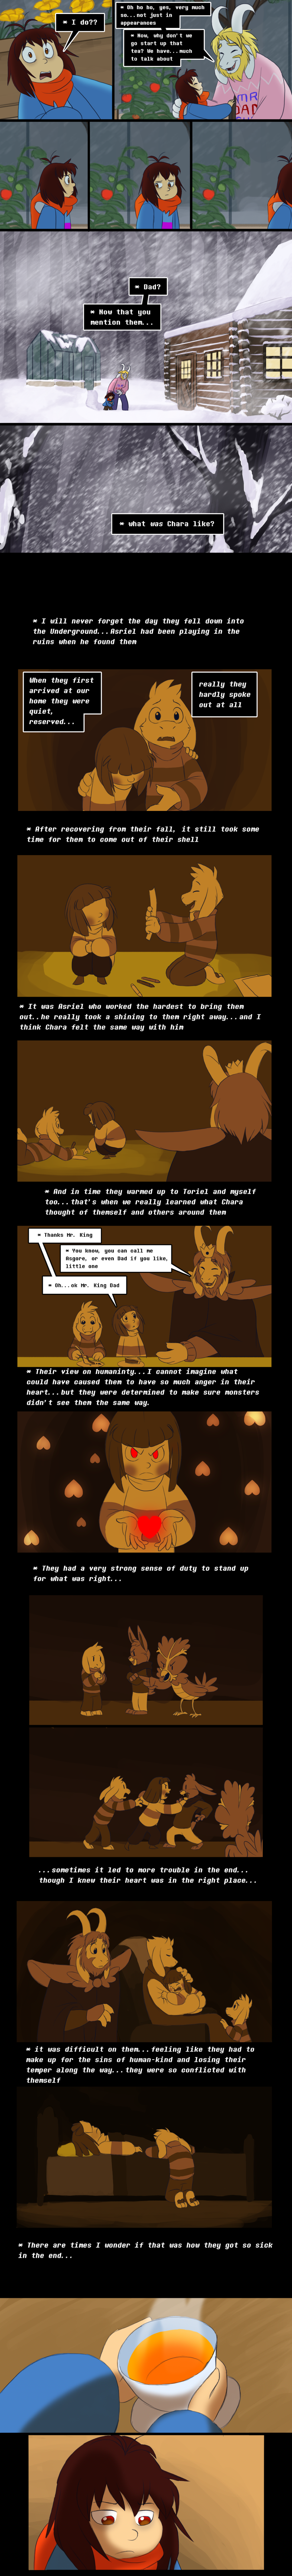 Endertale - Page 29 by TC-96